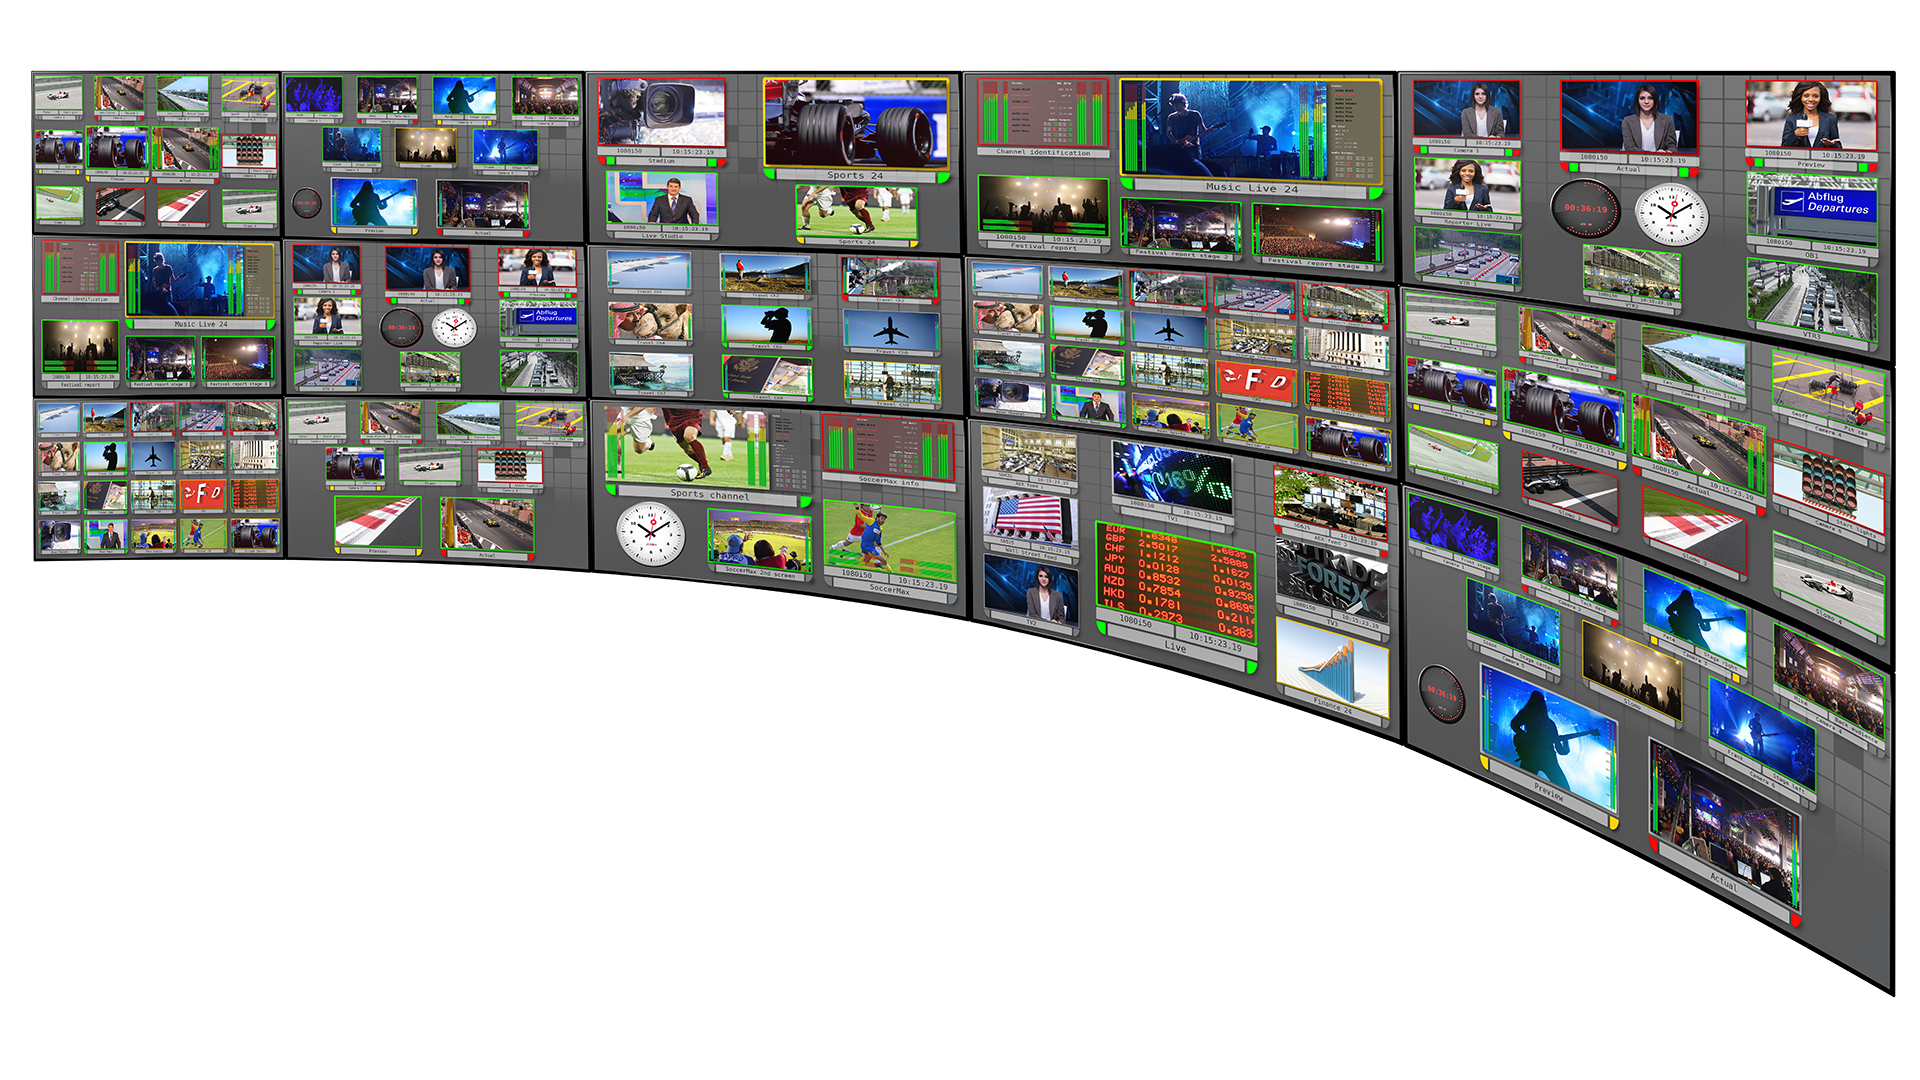 New Multiviewer Supports 4K & IP production